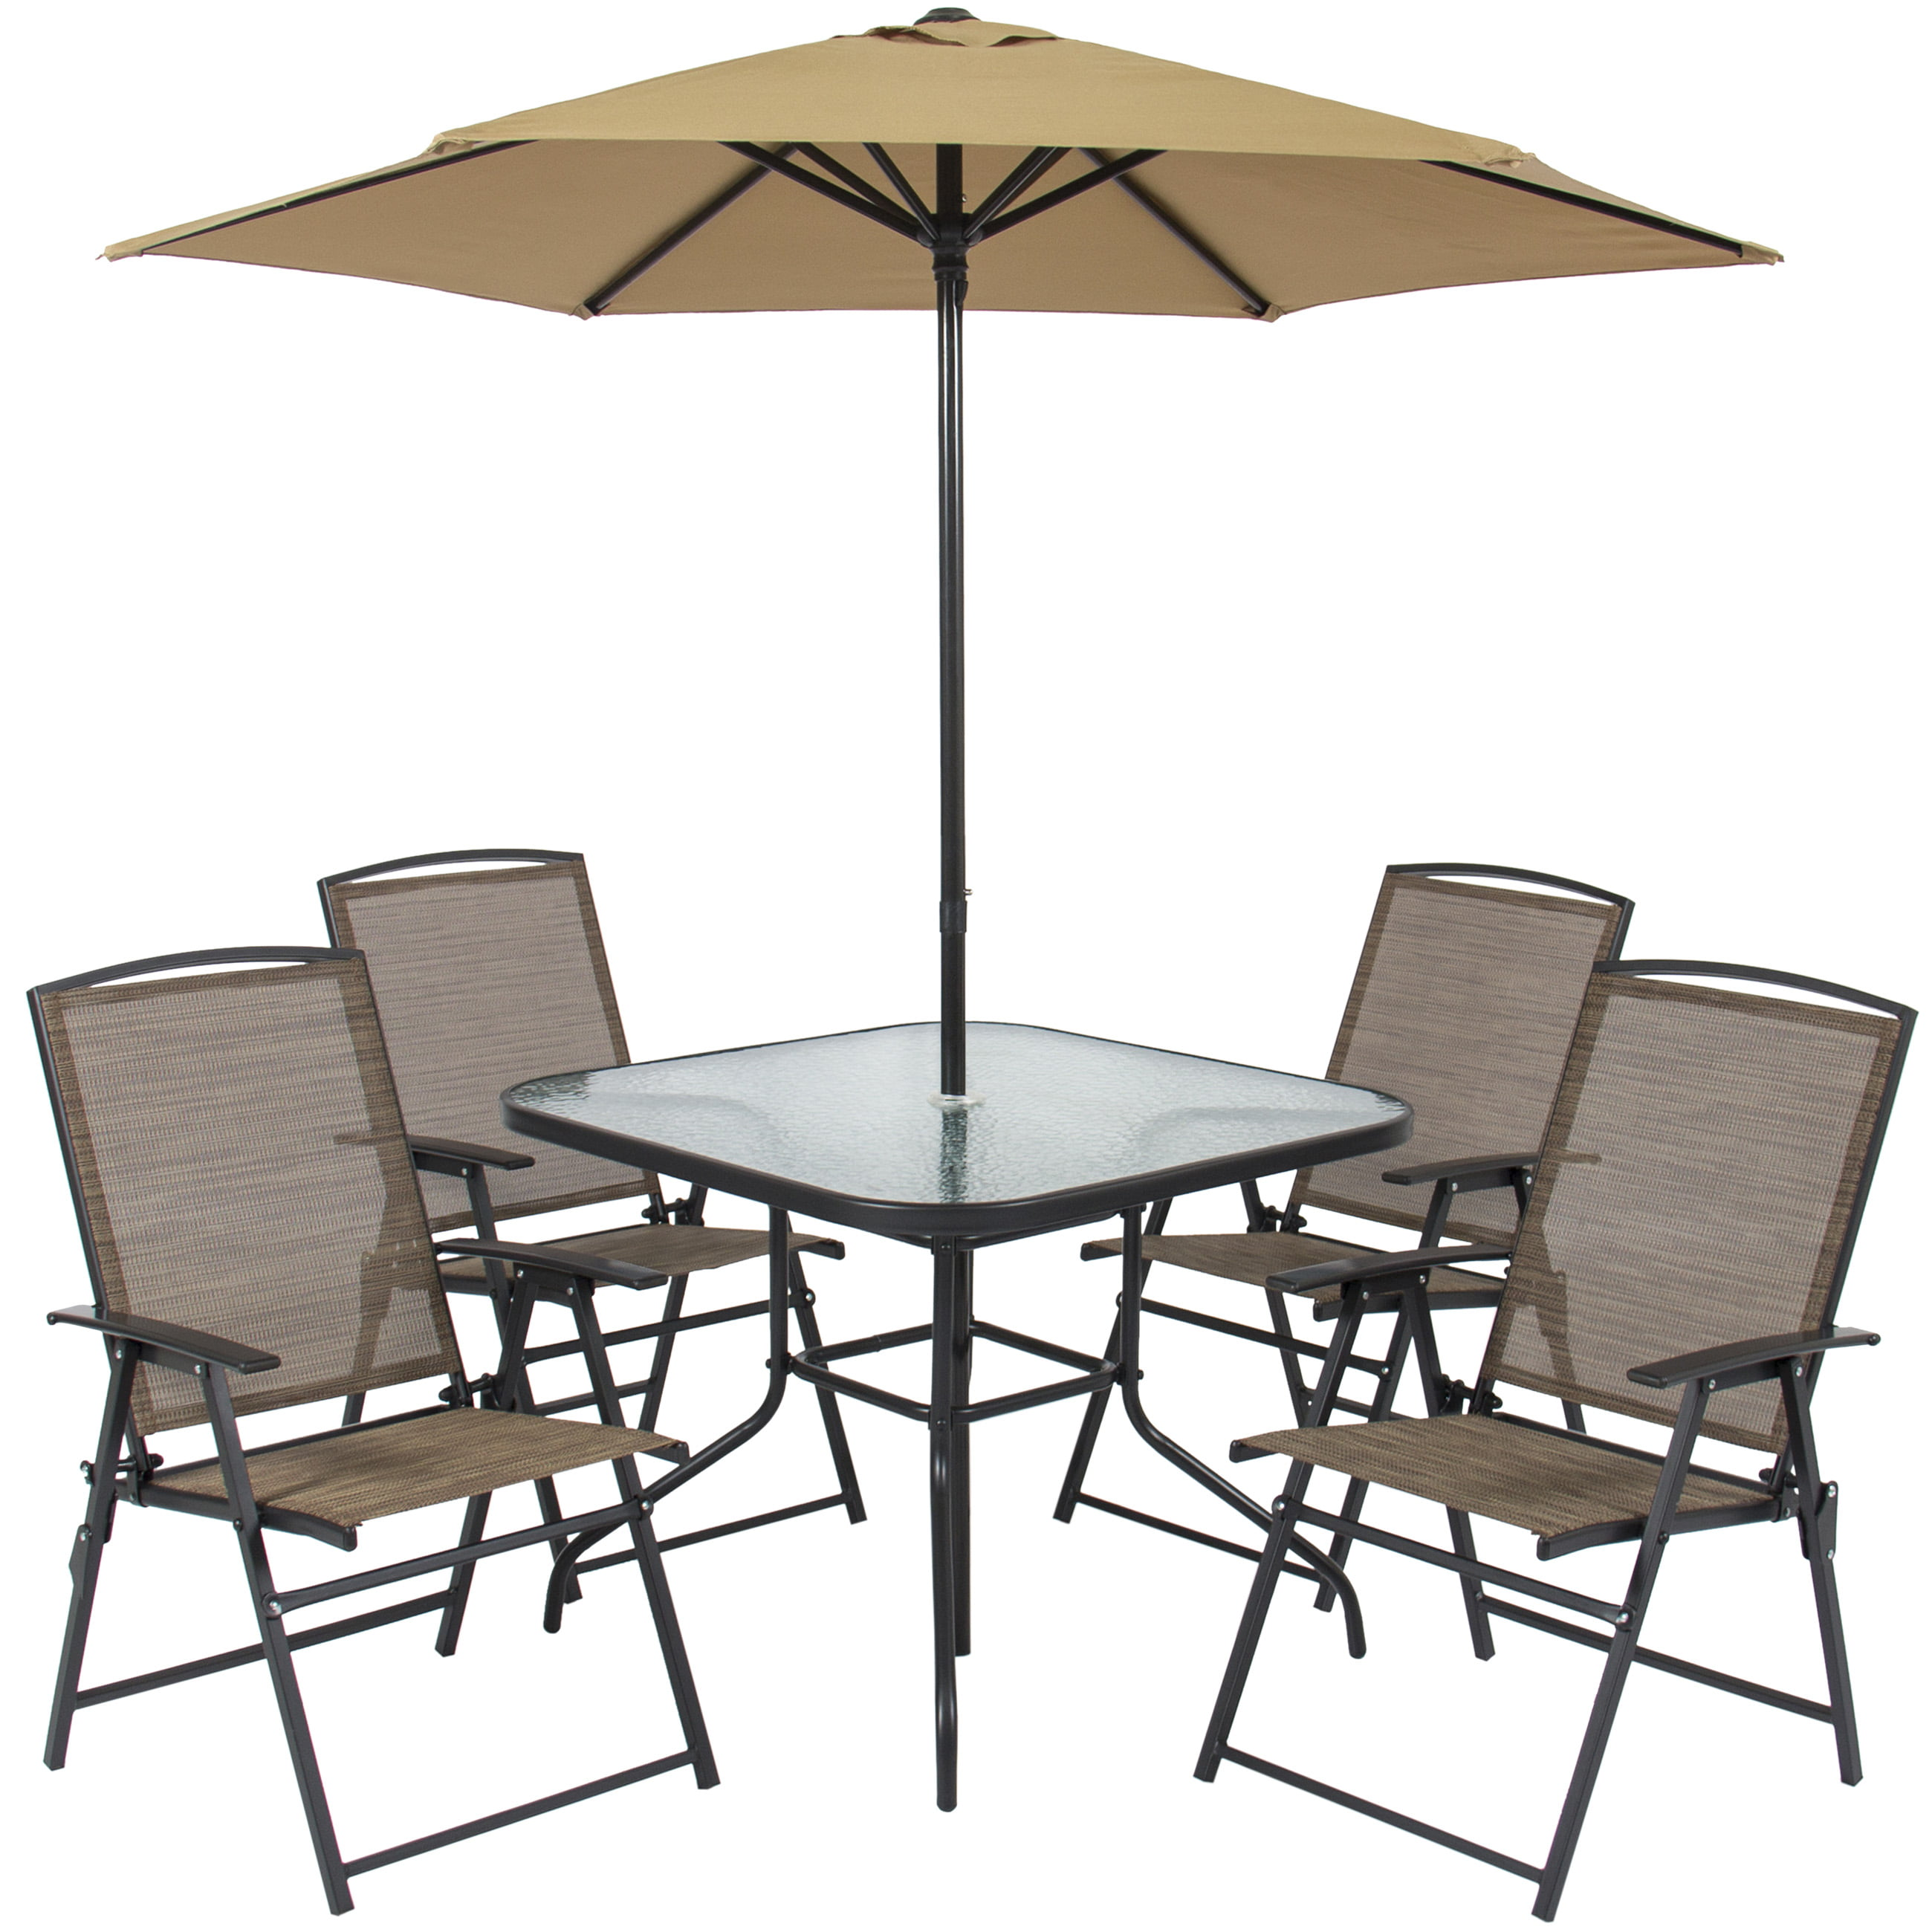 Best Choice Products 6 Piece Outdoor Folding Patio Dining Set W/ Table, 4  Chairs, Umbrella, And Built In Base  Tan   Walmart.com